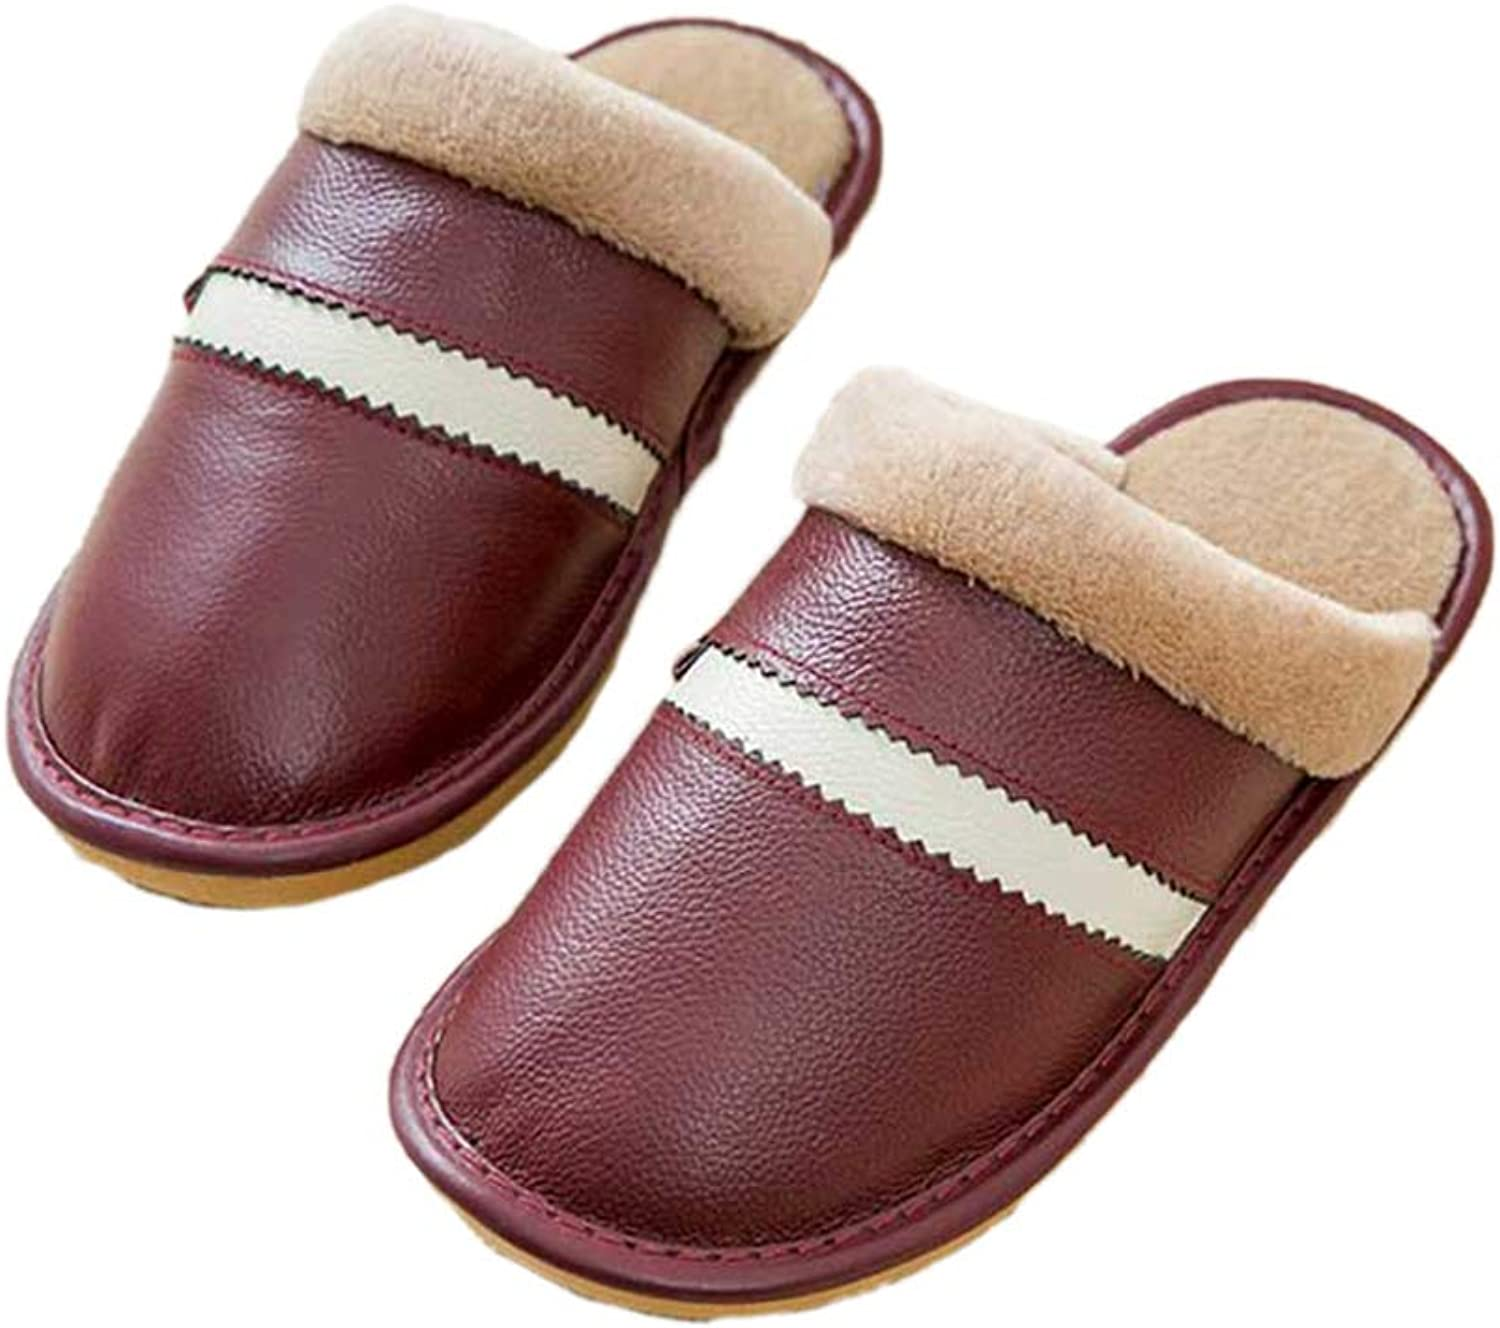 Nafanio Family Genuine Leather Slippers Indoor Women Men Warm Winter Home Thick Cotton shoes